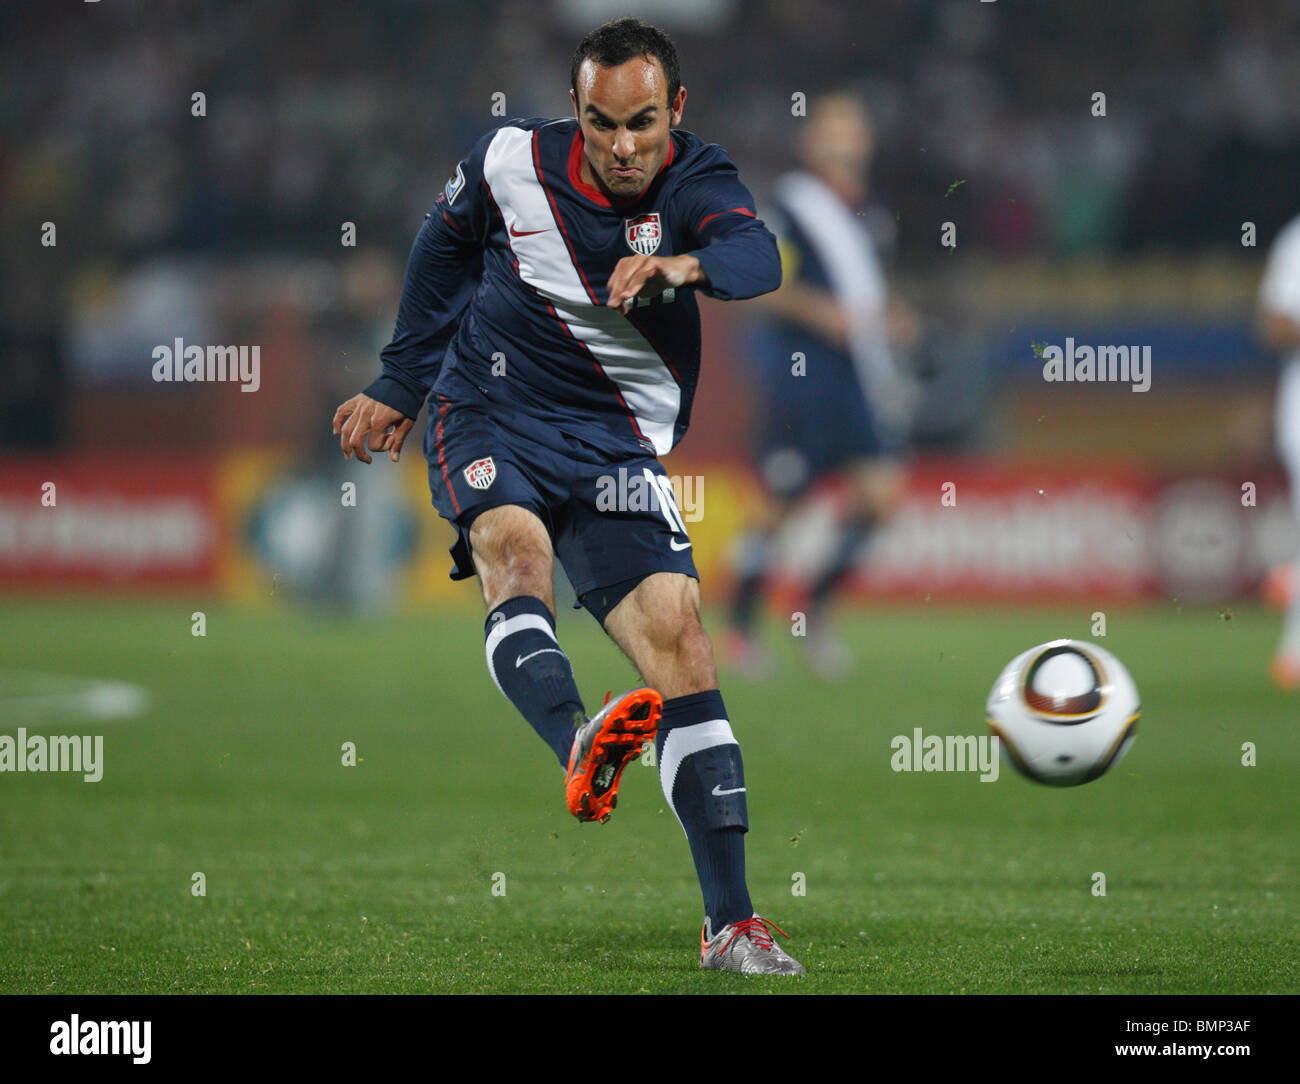 Landon Donovan of the United States cracks a shot against England during a 2010 FIFA World Cup football match June - Stock Image